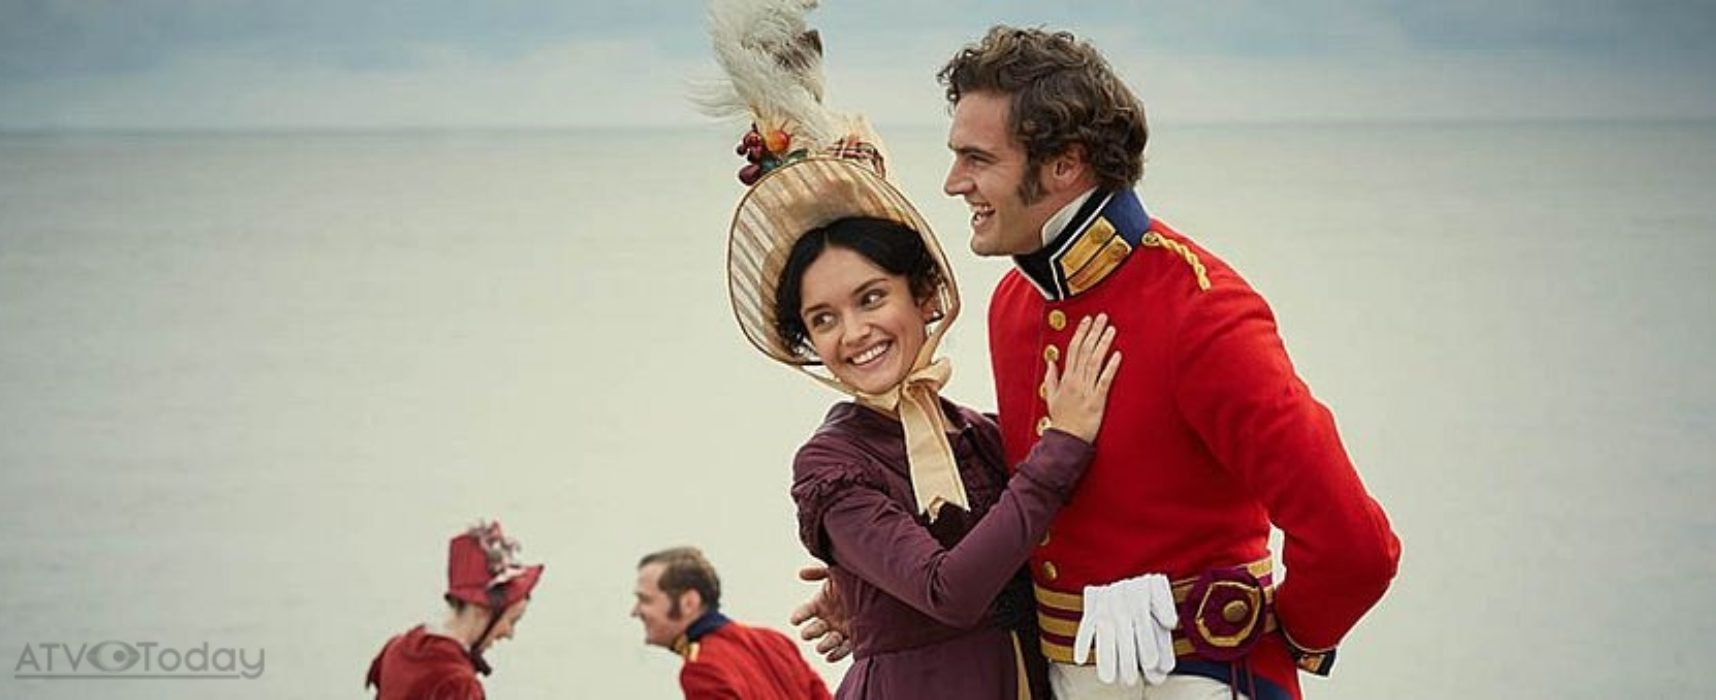 Cast announced for ITV's Vanity Fair